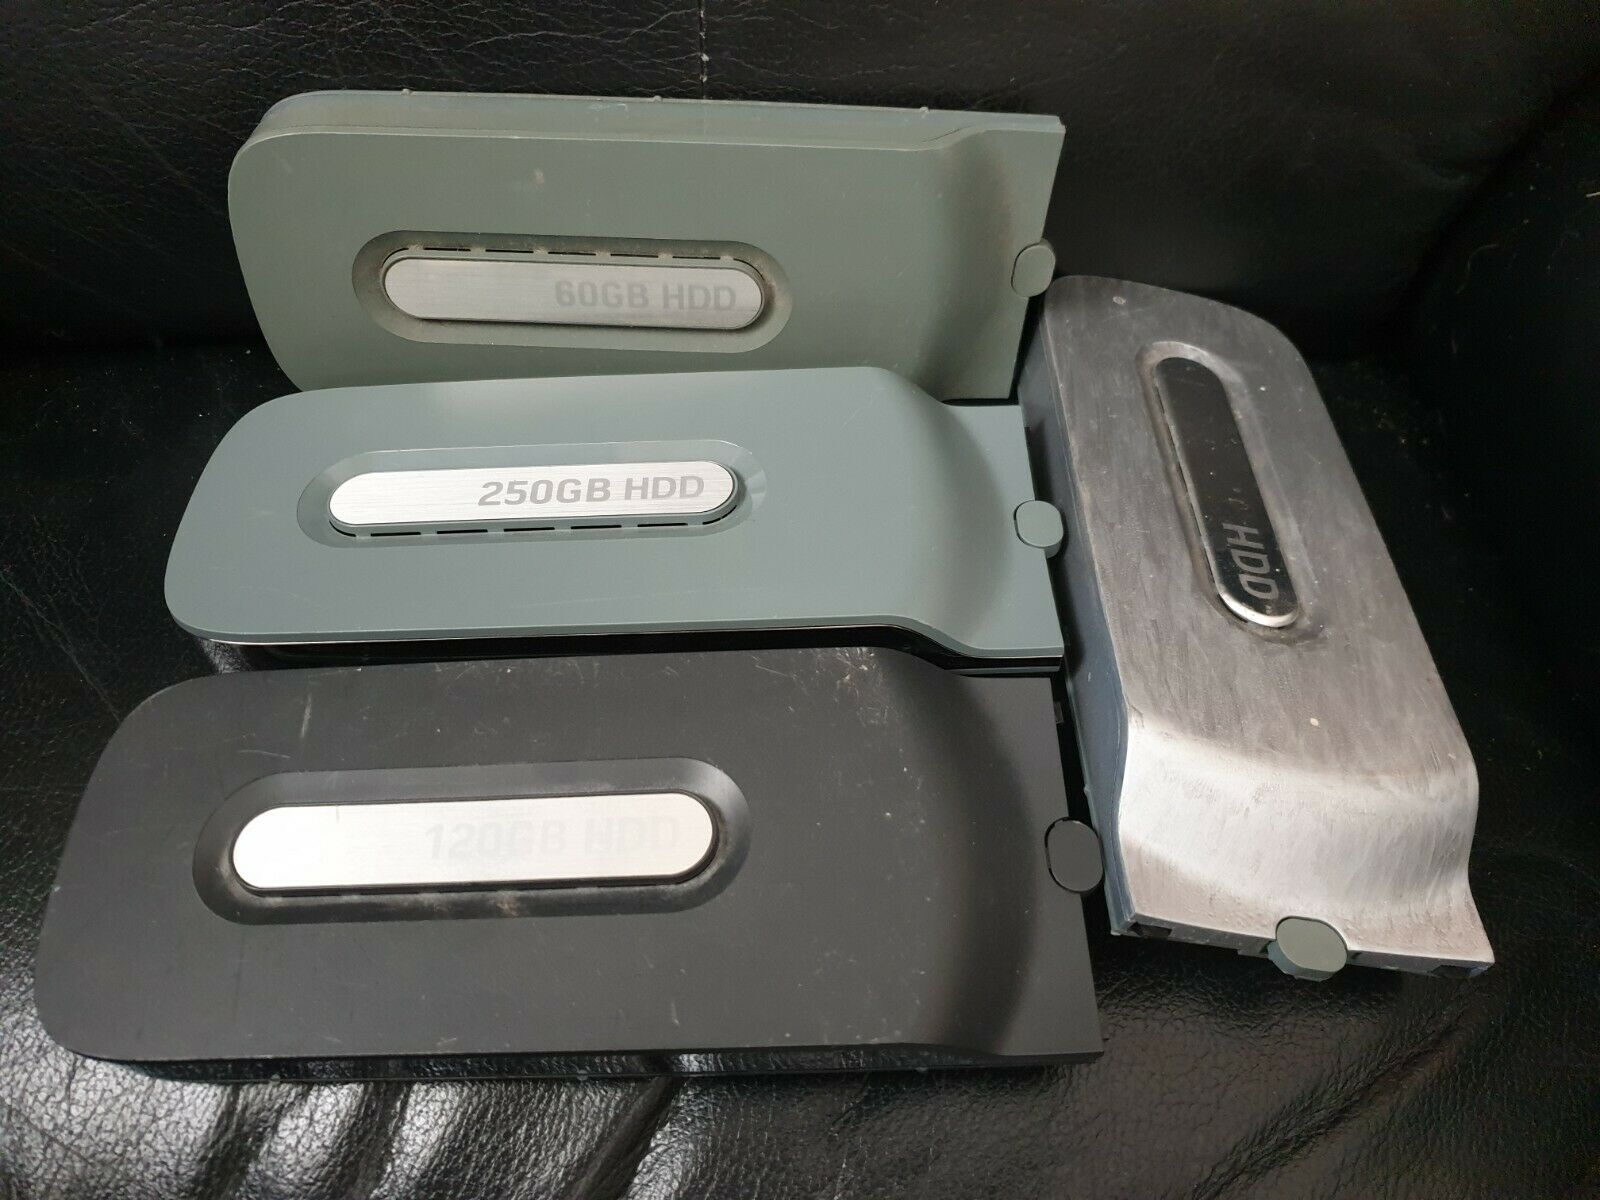 15x Official Xbox 360 Hard Drives, From Each With Free Postage